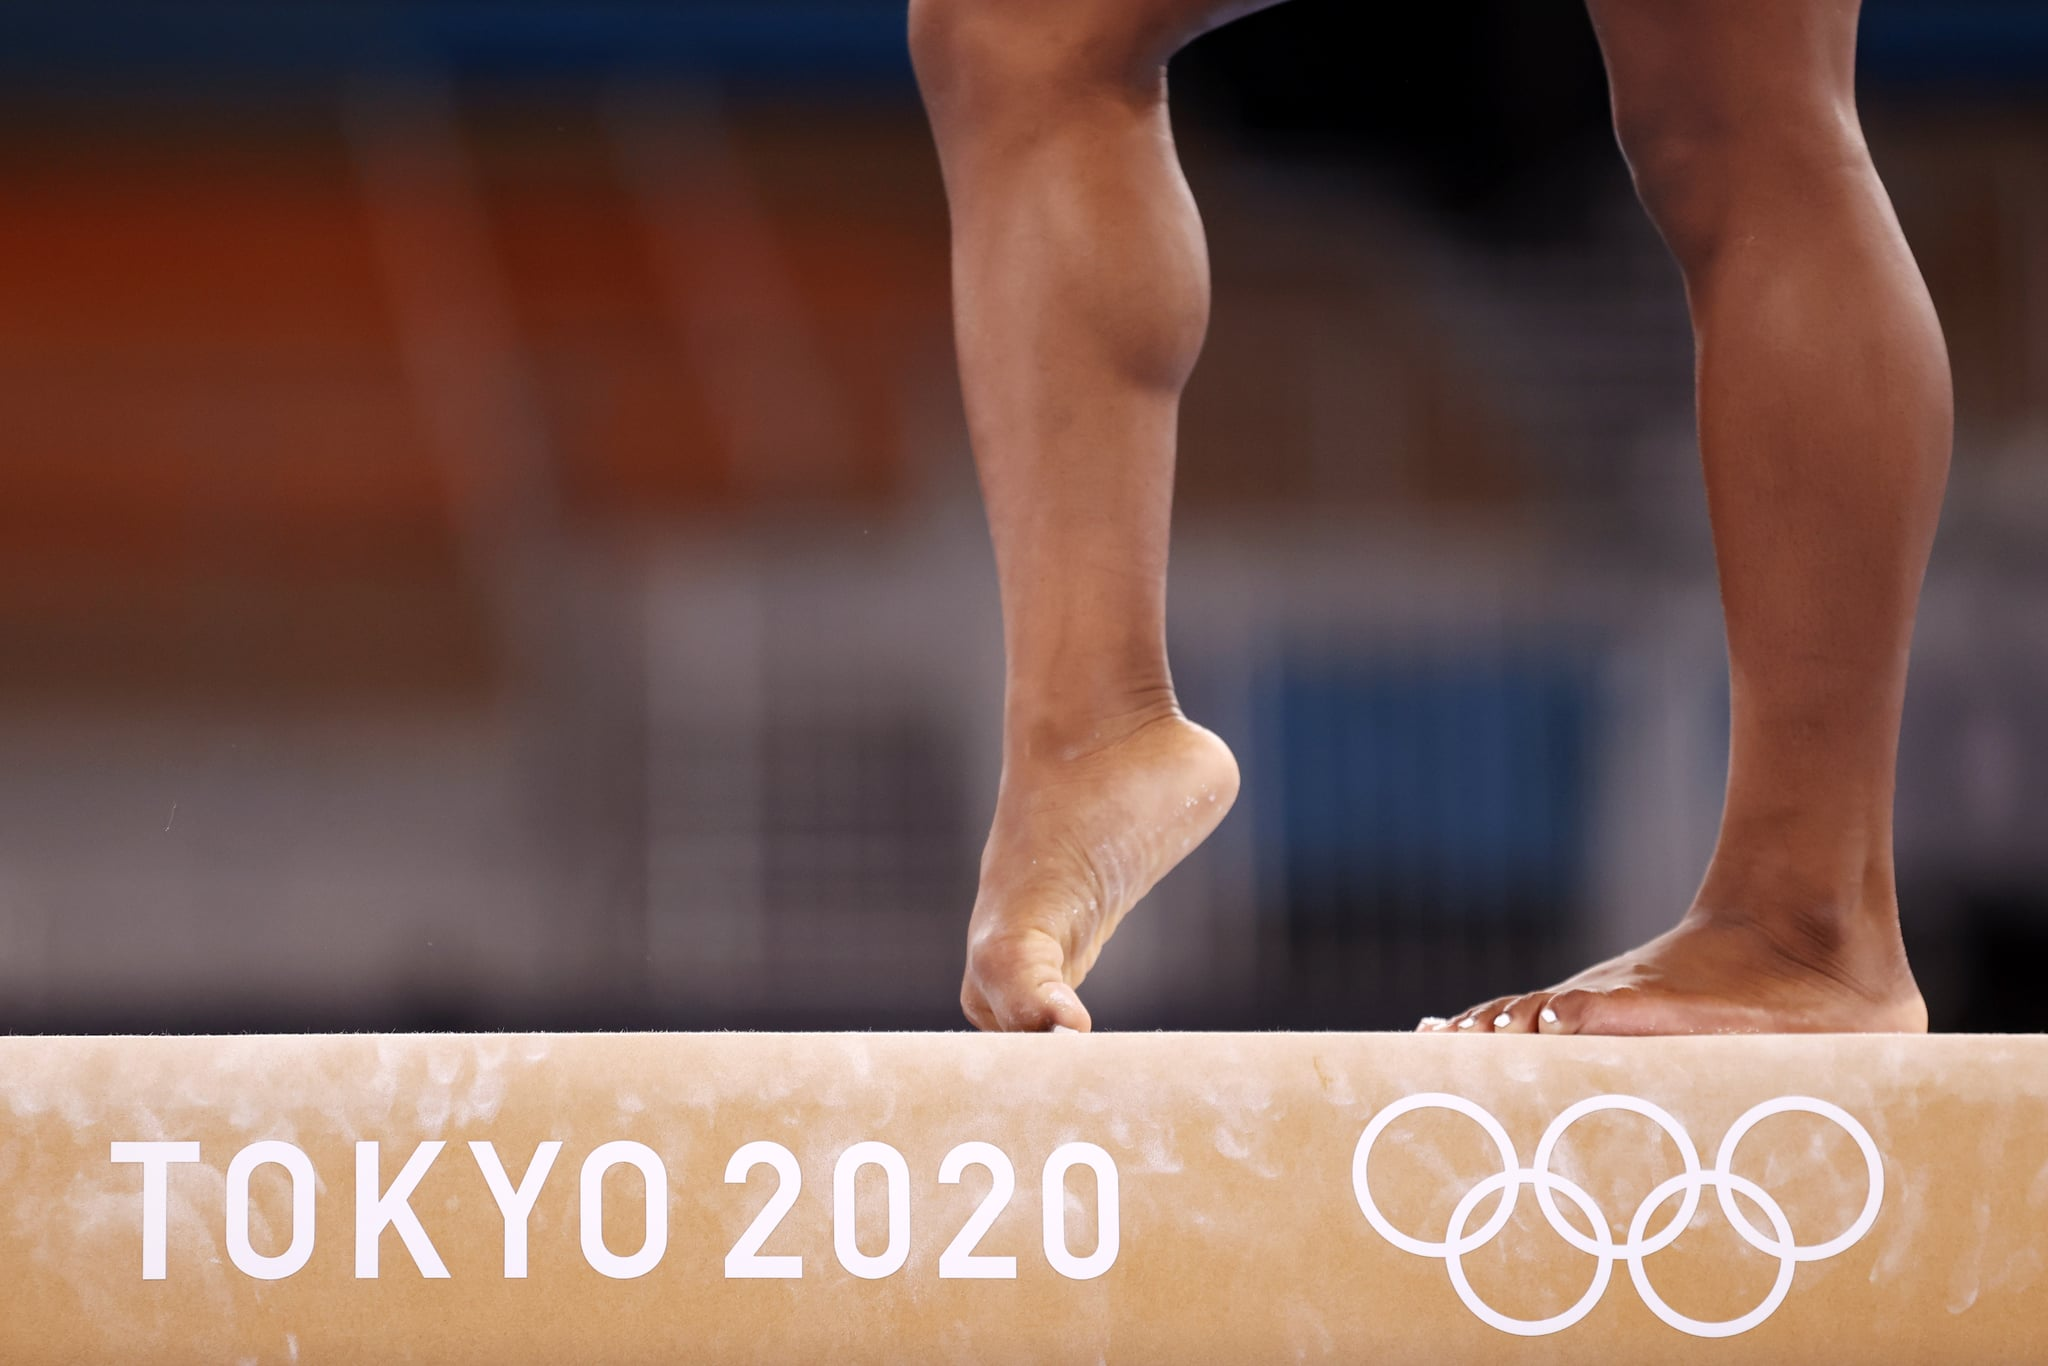 TOKYO, JAPAN - JULY 22: A detail as Simone Biles of Team United States trains on balance beam during Women's Podium Training ahead of the Tokyo 2020 Olympic Games at Ariake Gymnastics Centre on July 22, 2021 in Tokyo, Japan. (Photo by Jamie Squire/Getty Images)